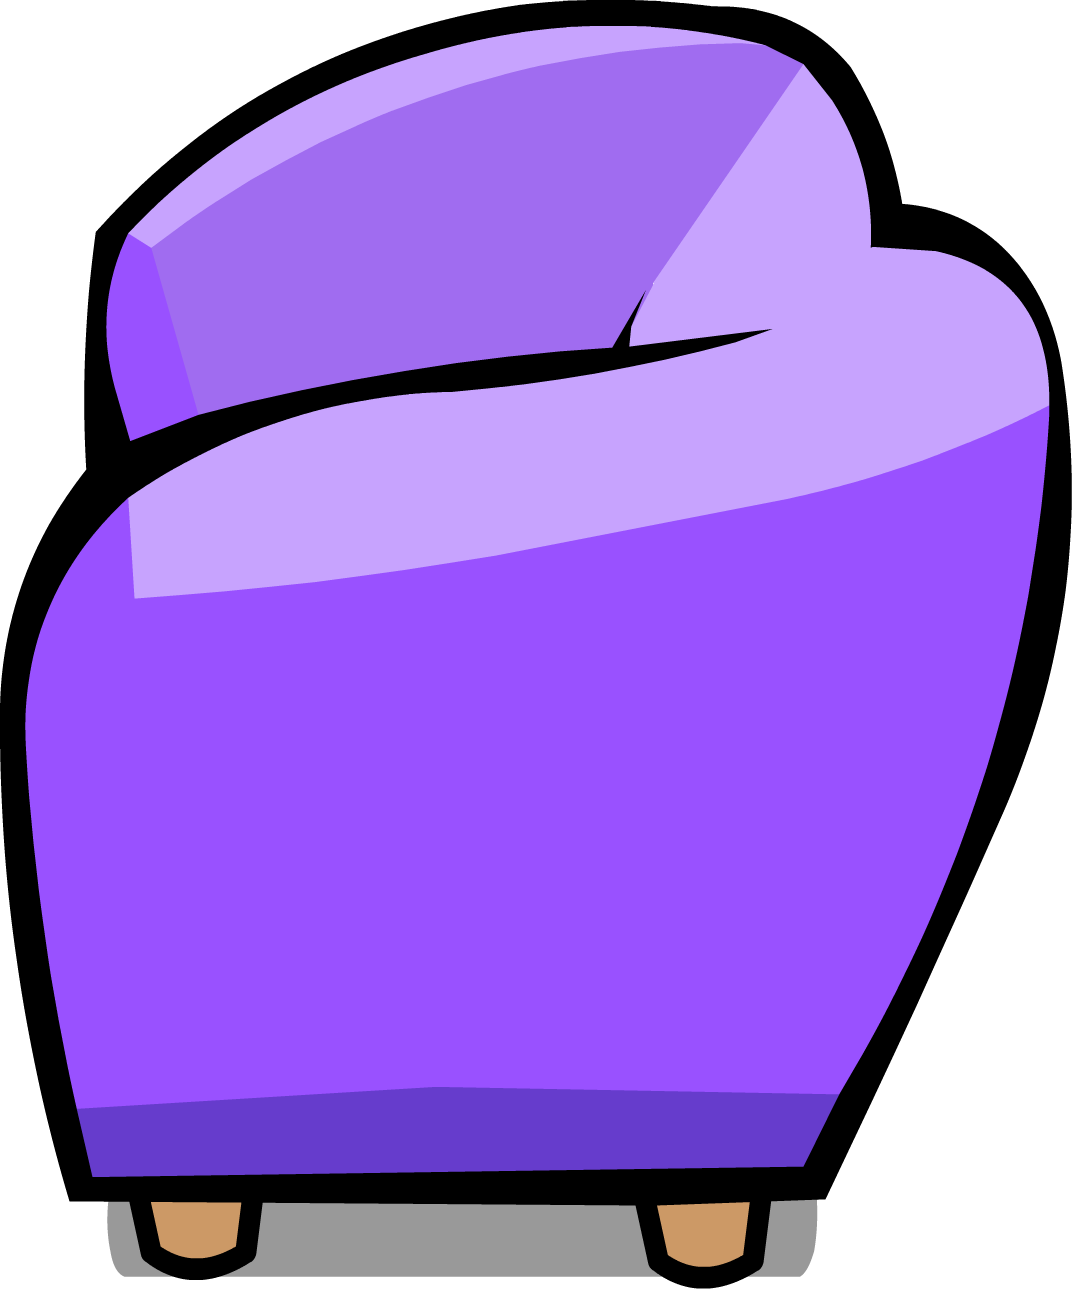 Image sprite png club. Couch clipart purple couch